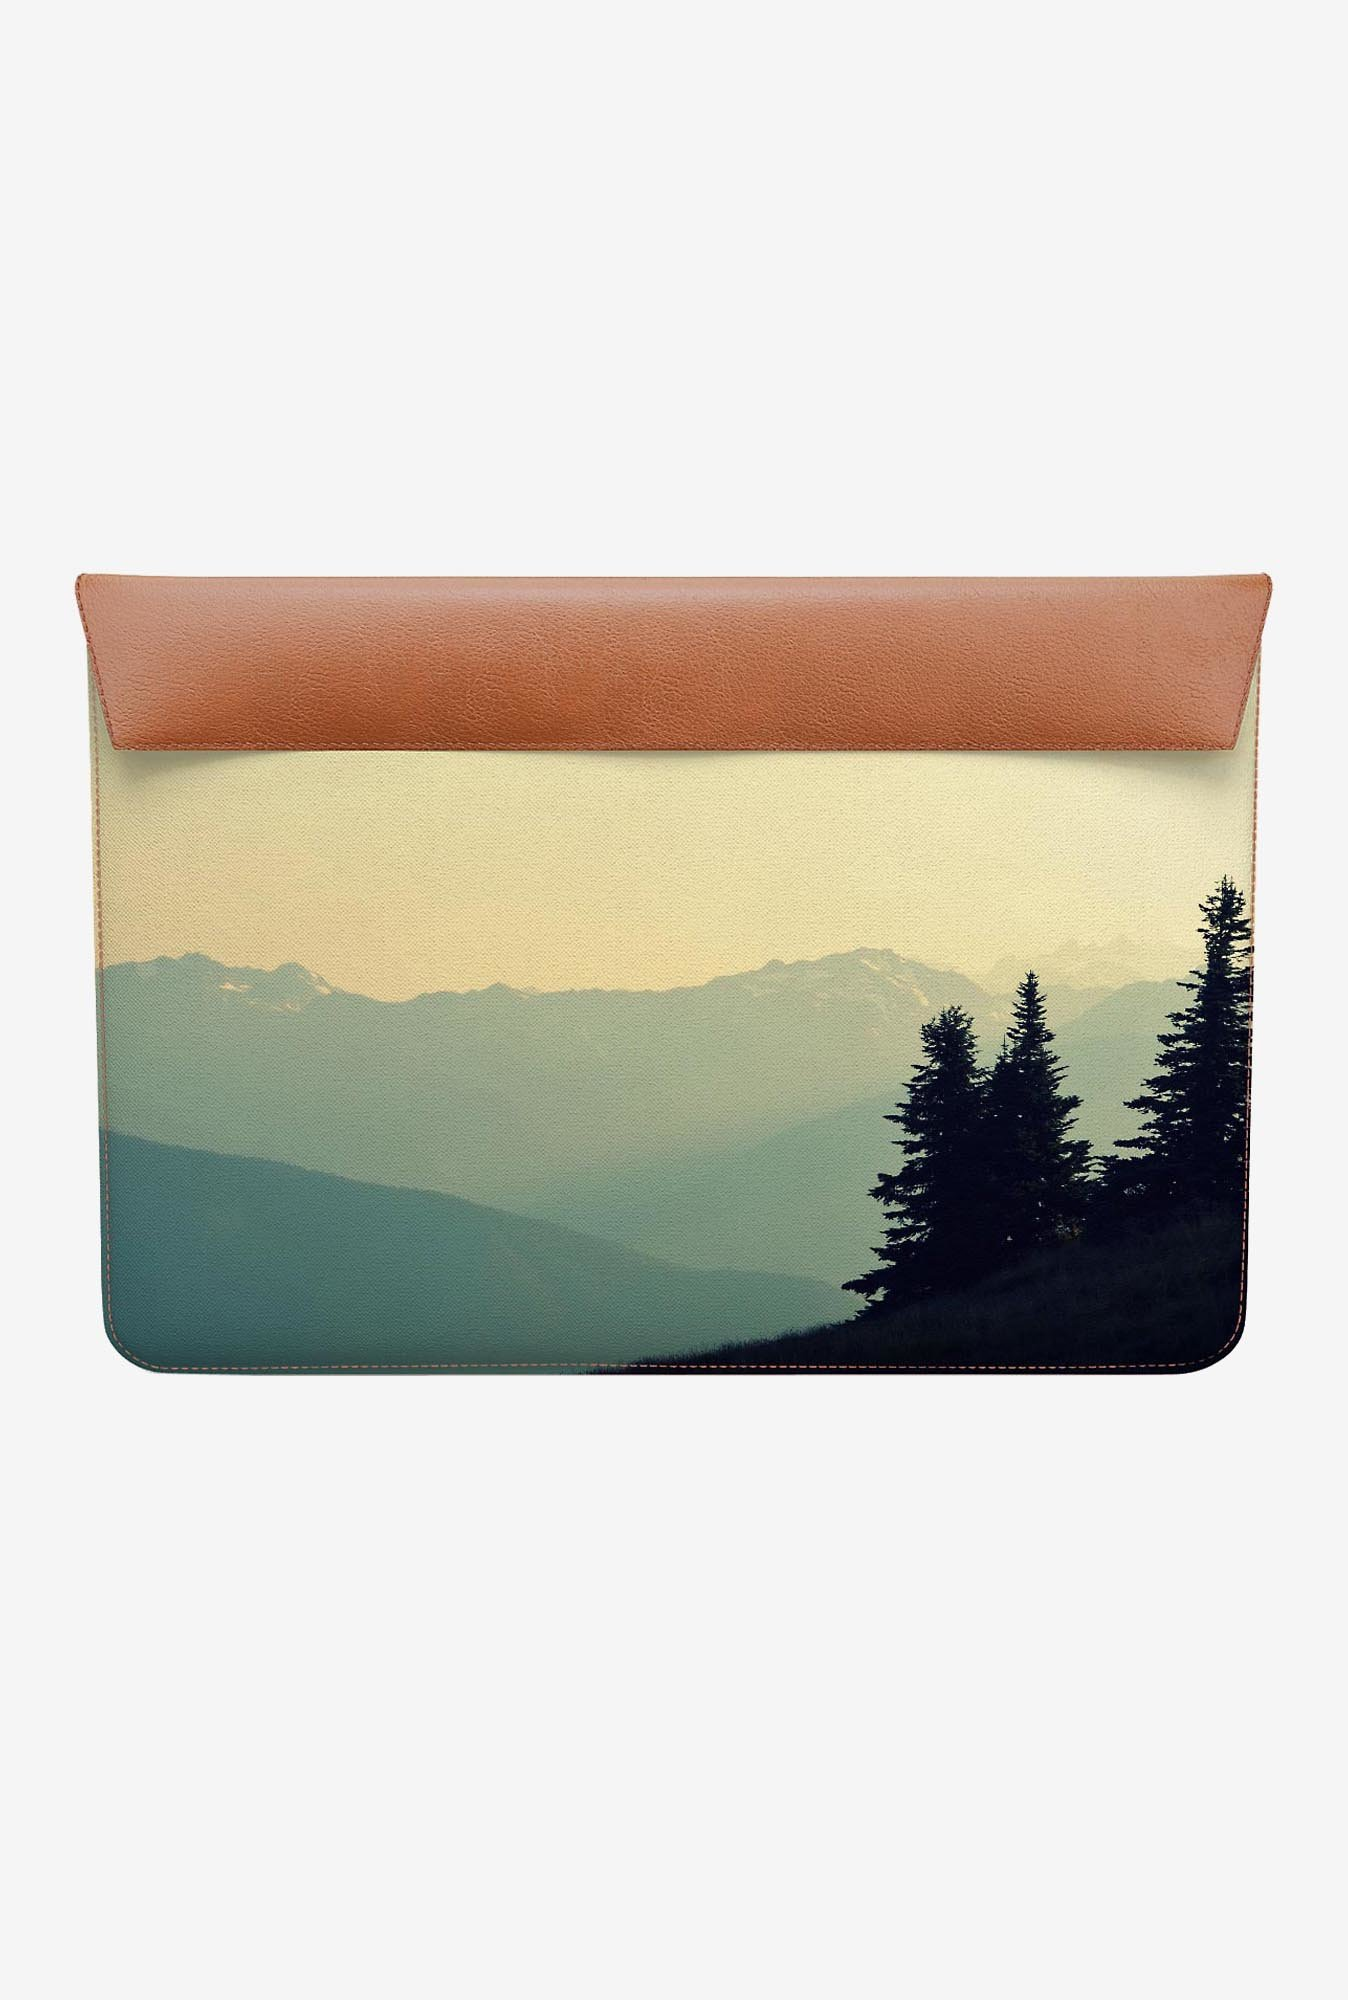 DailyObjects World Landscape MacBook Air 11 Envelope Sleeve